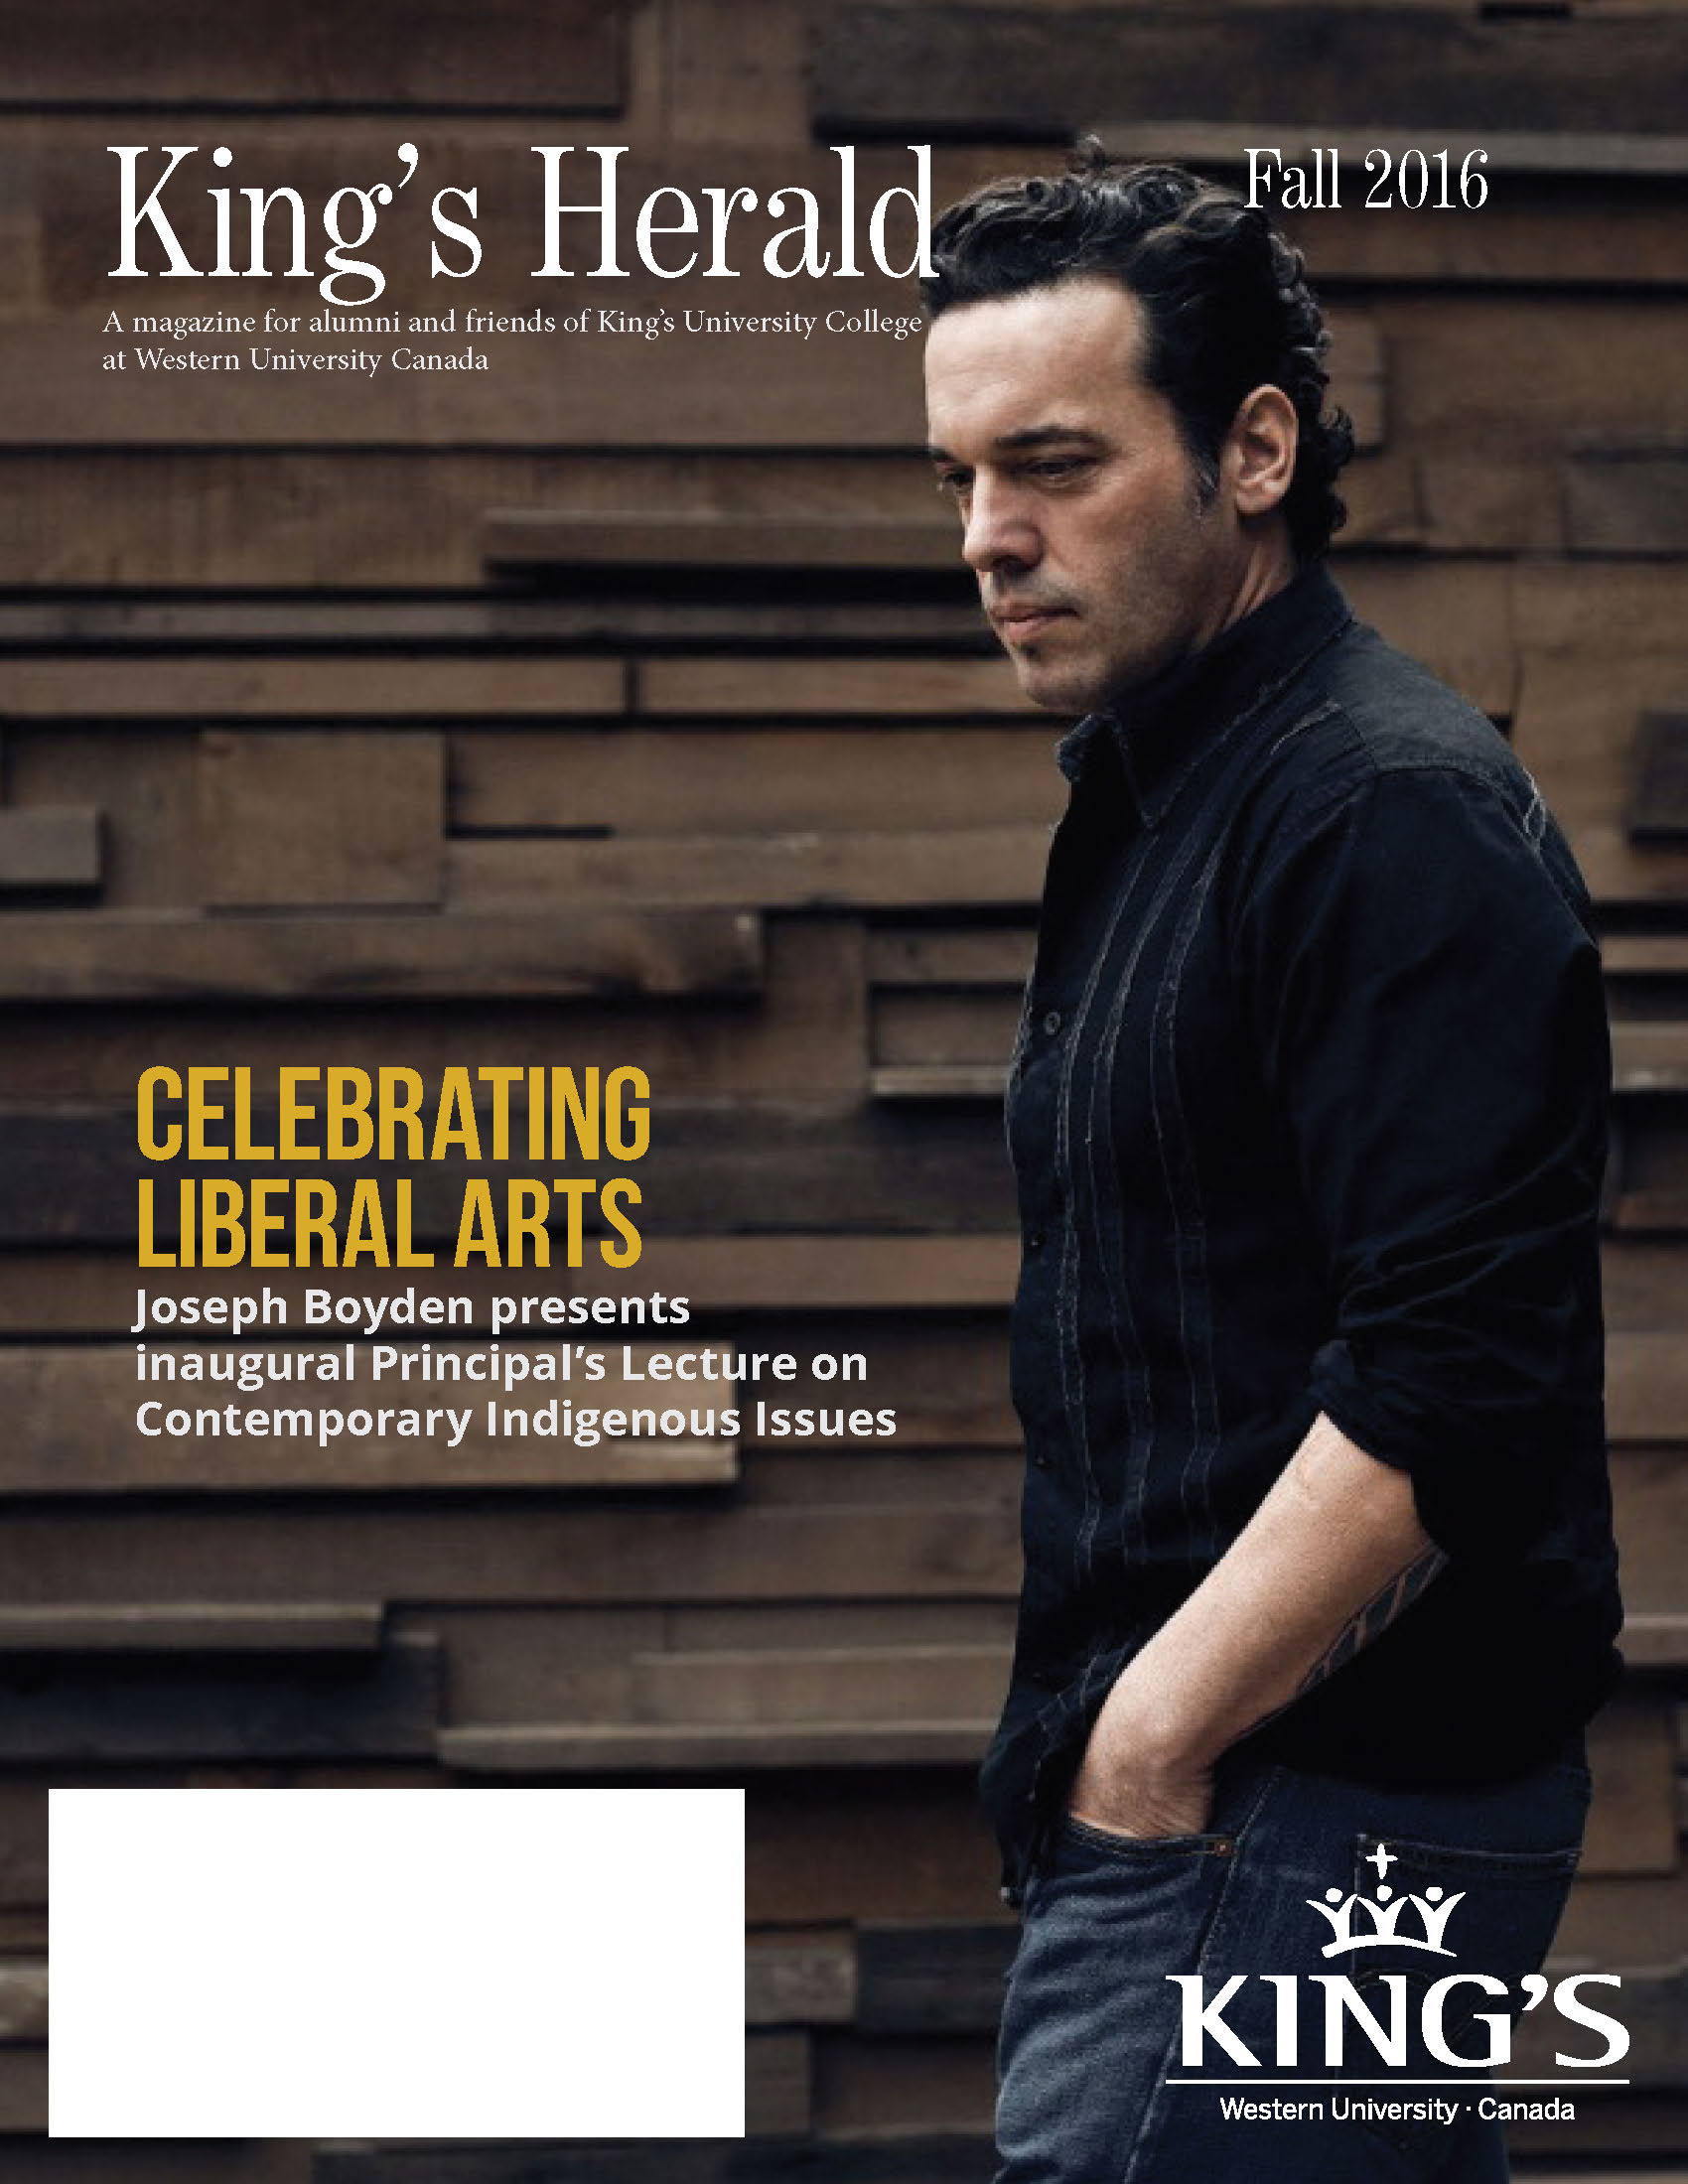 (image: King's Herald Fall 2016)